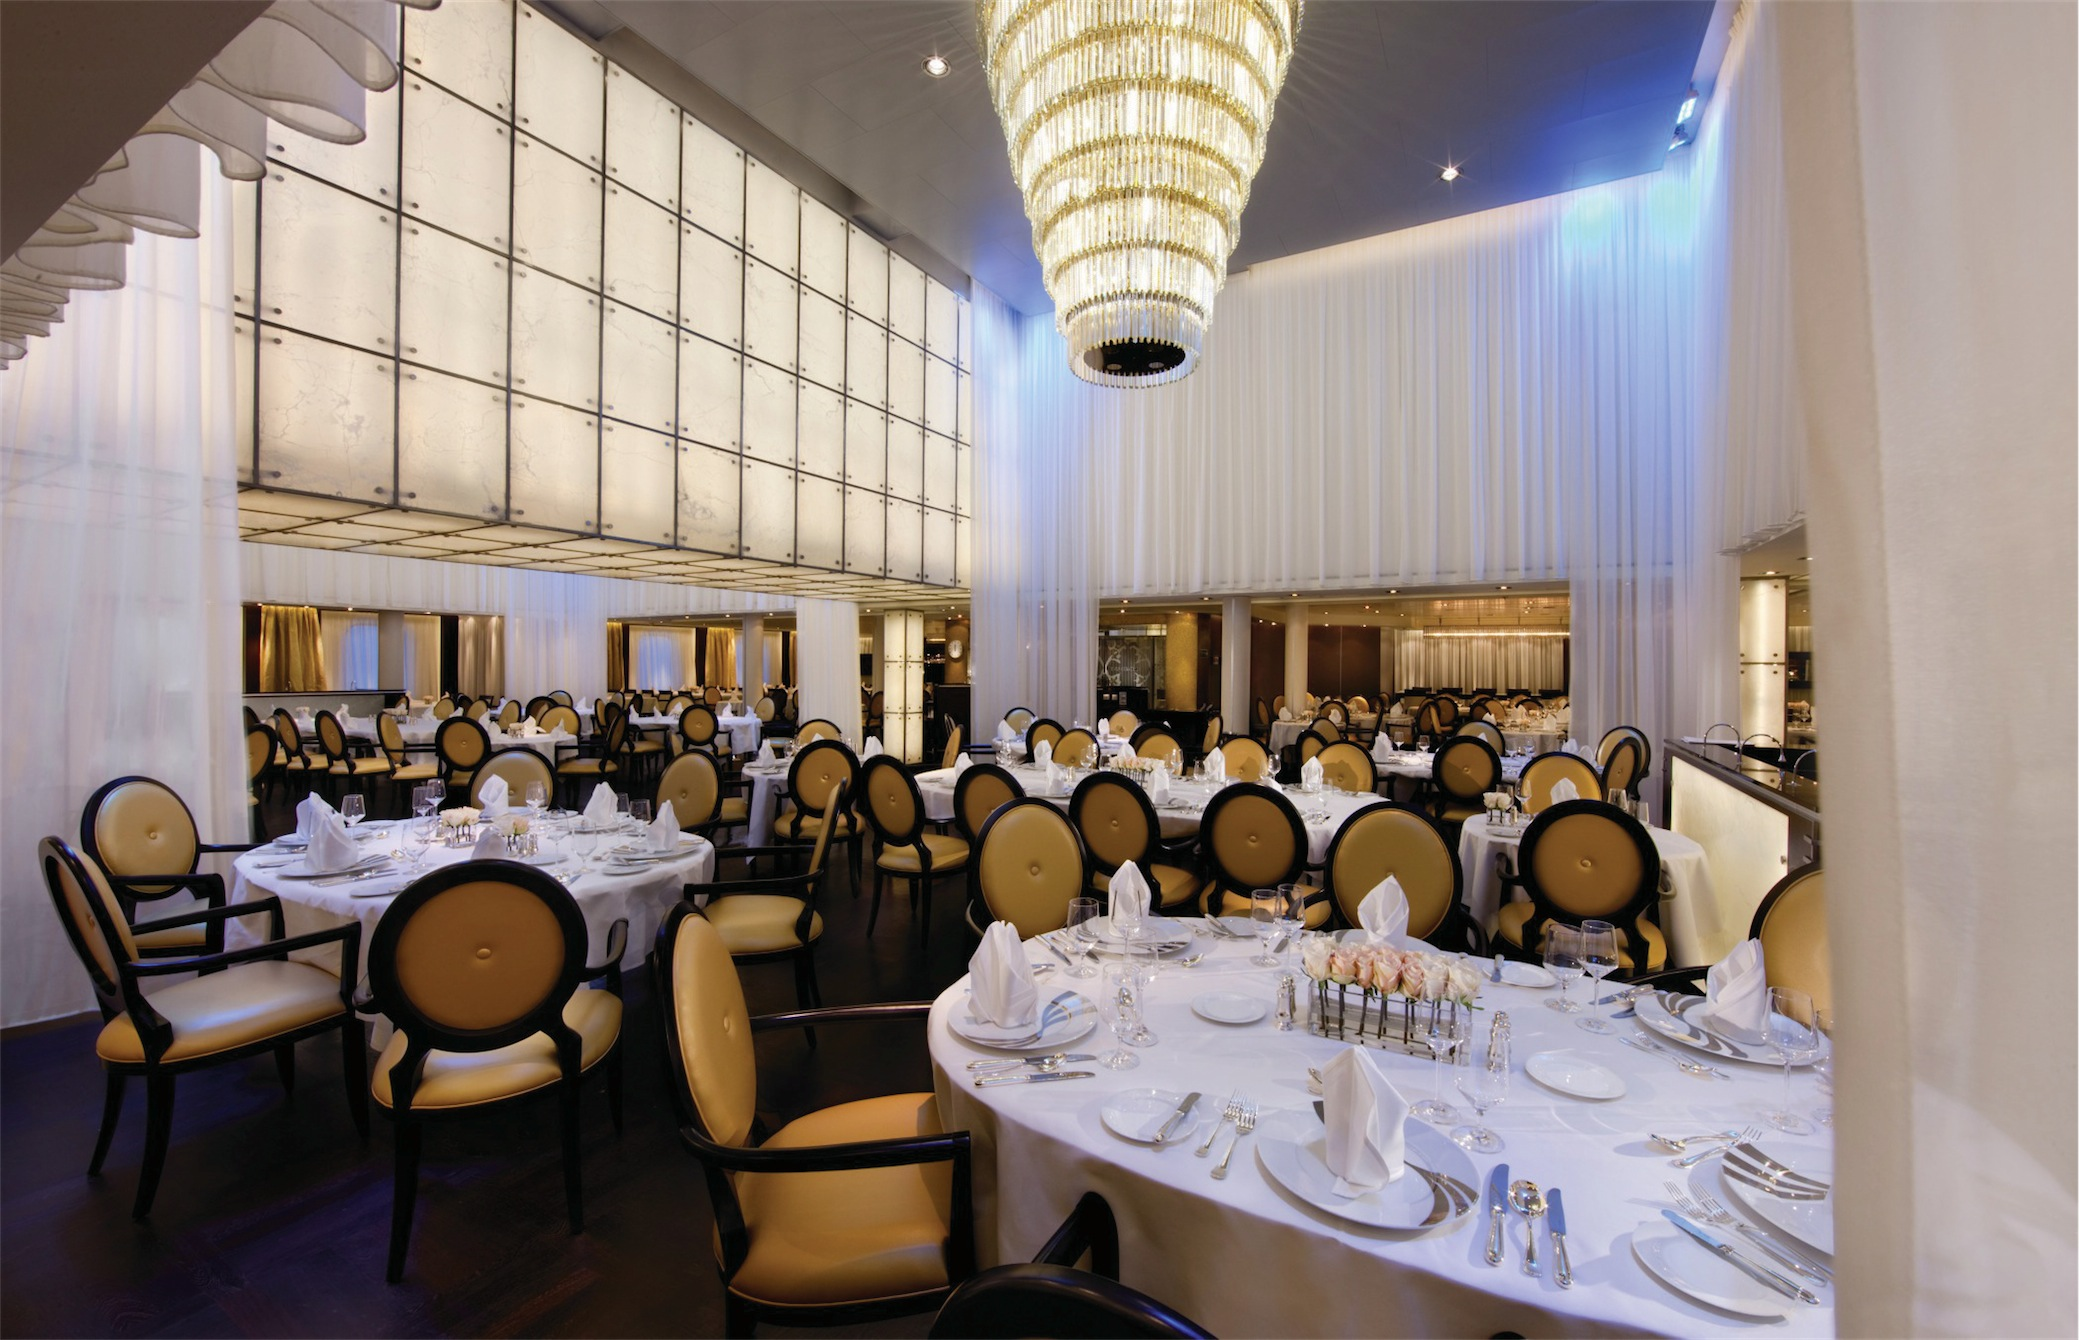 Seabourn Odyssey Class Interior The Restaurant.jpg